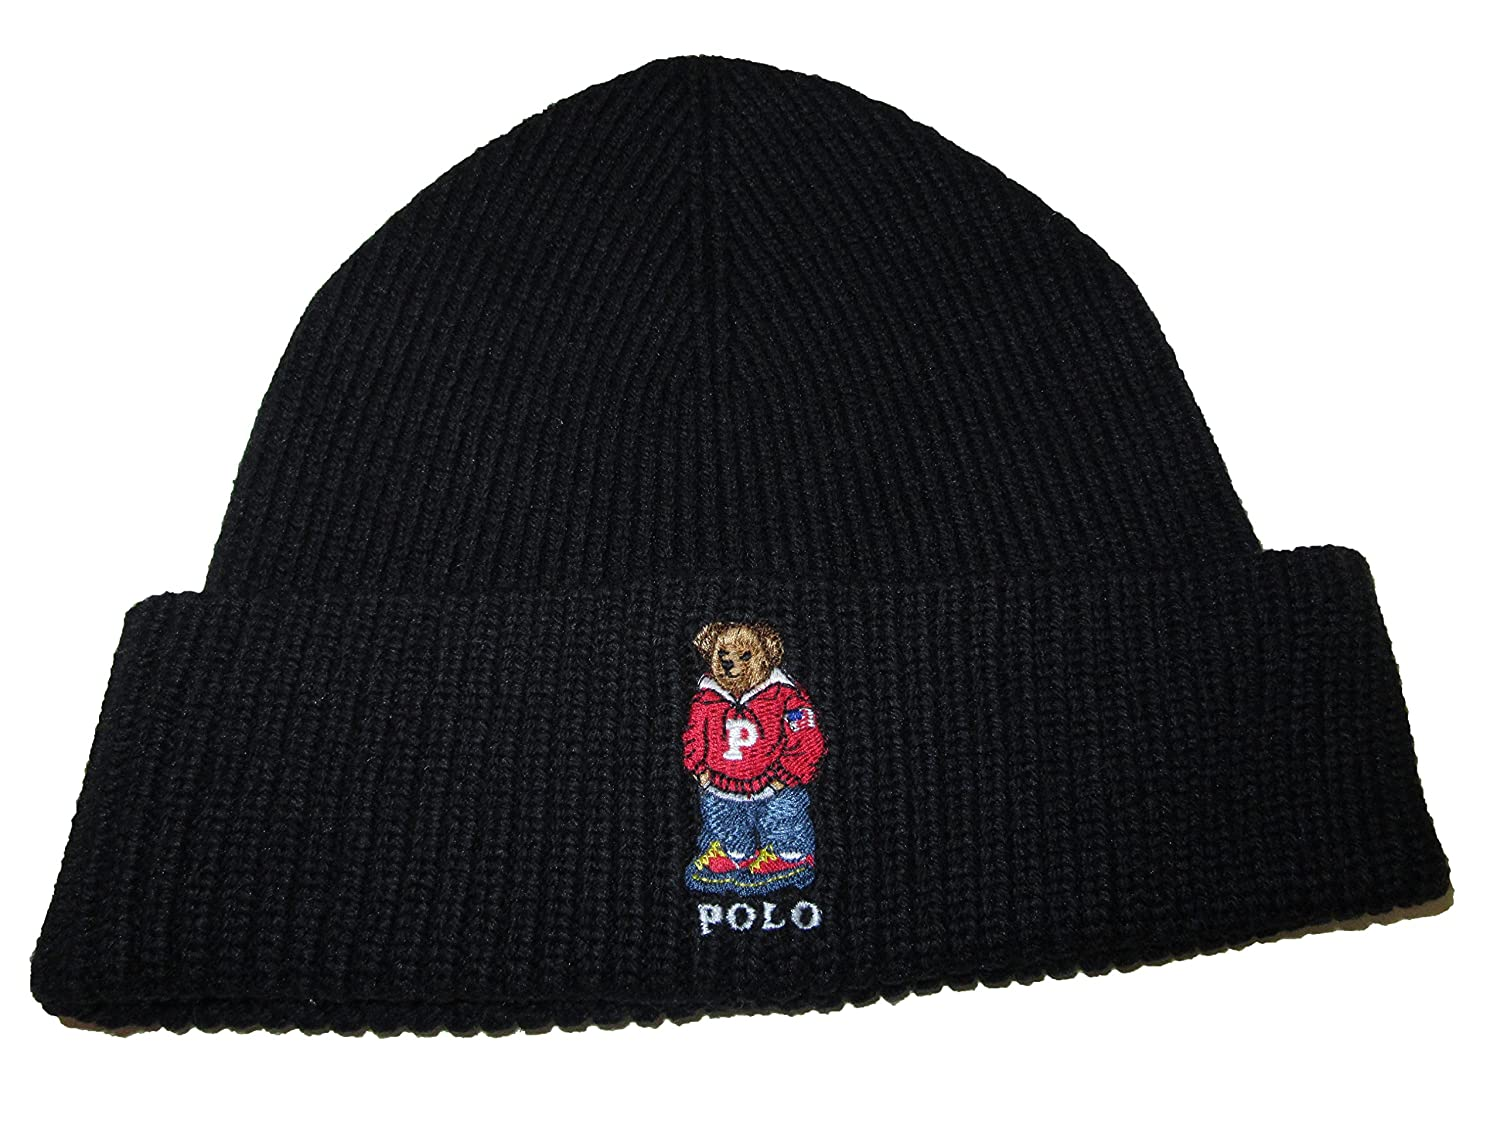 Ralph Lauren Polo Adult s Cuffed Teddy Bear Beanie Knit Hat One Size -  Black -  Amazon.co.uk  Clothing b0703fa72da